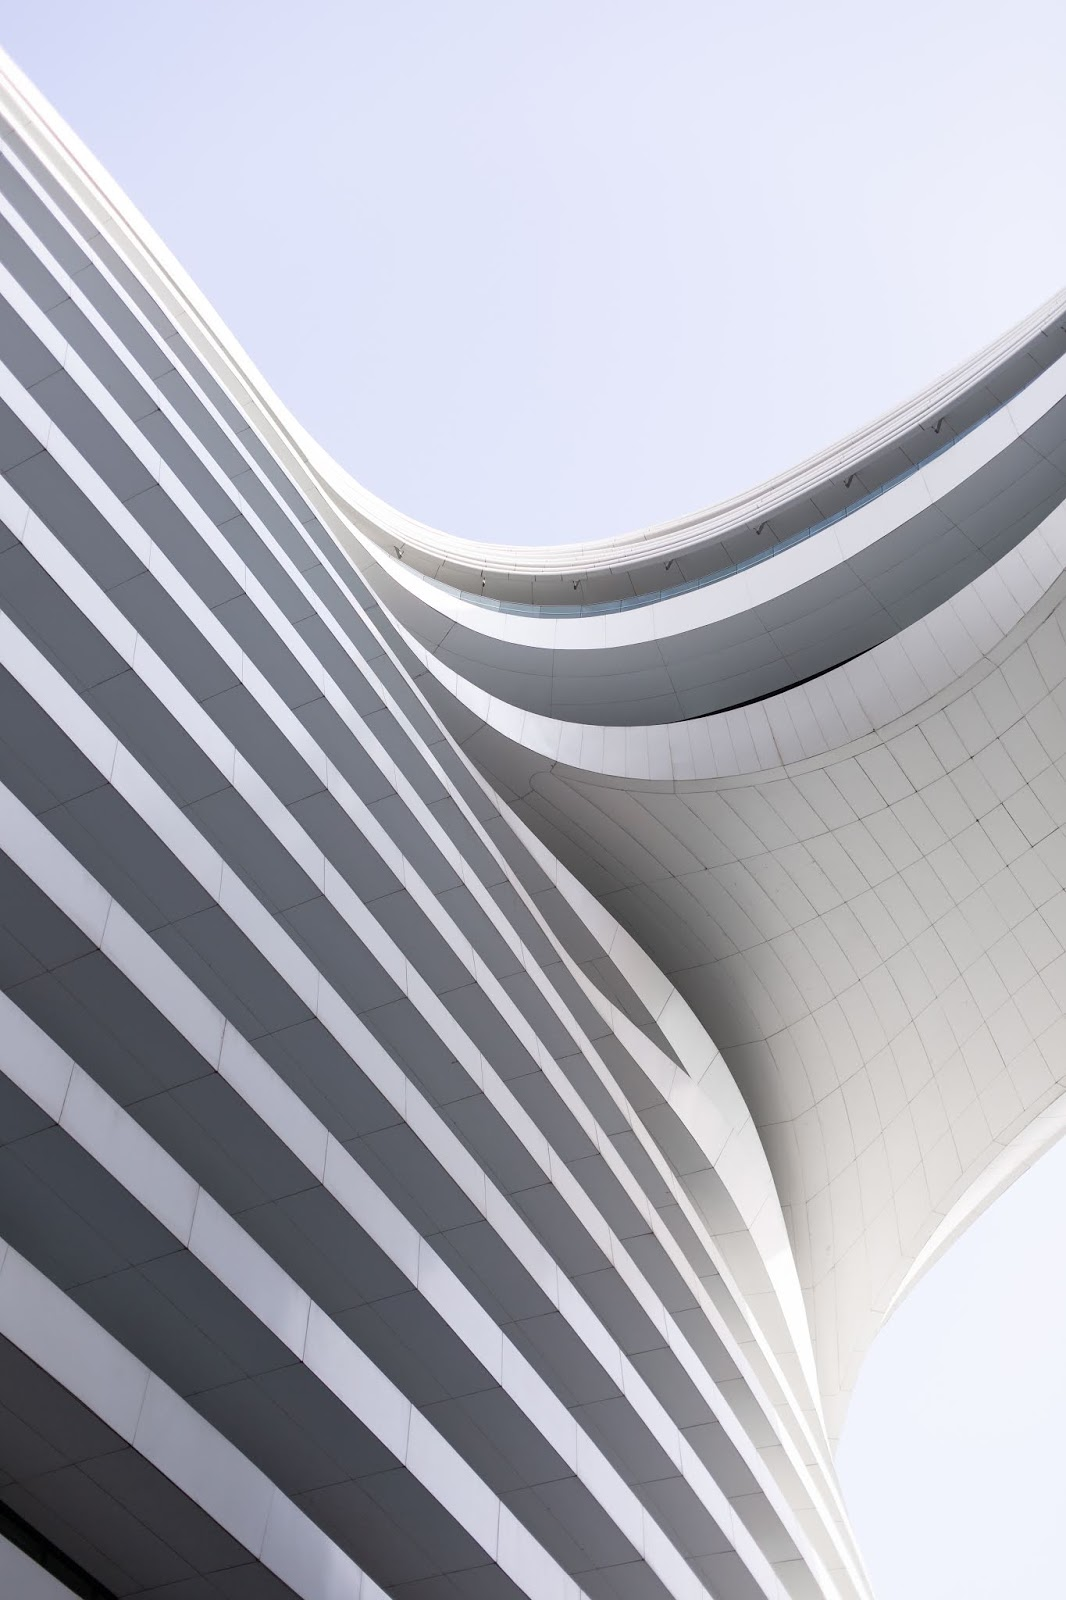 architectural design - hd wallpapers - backgrounds pic